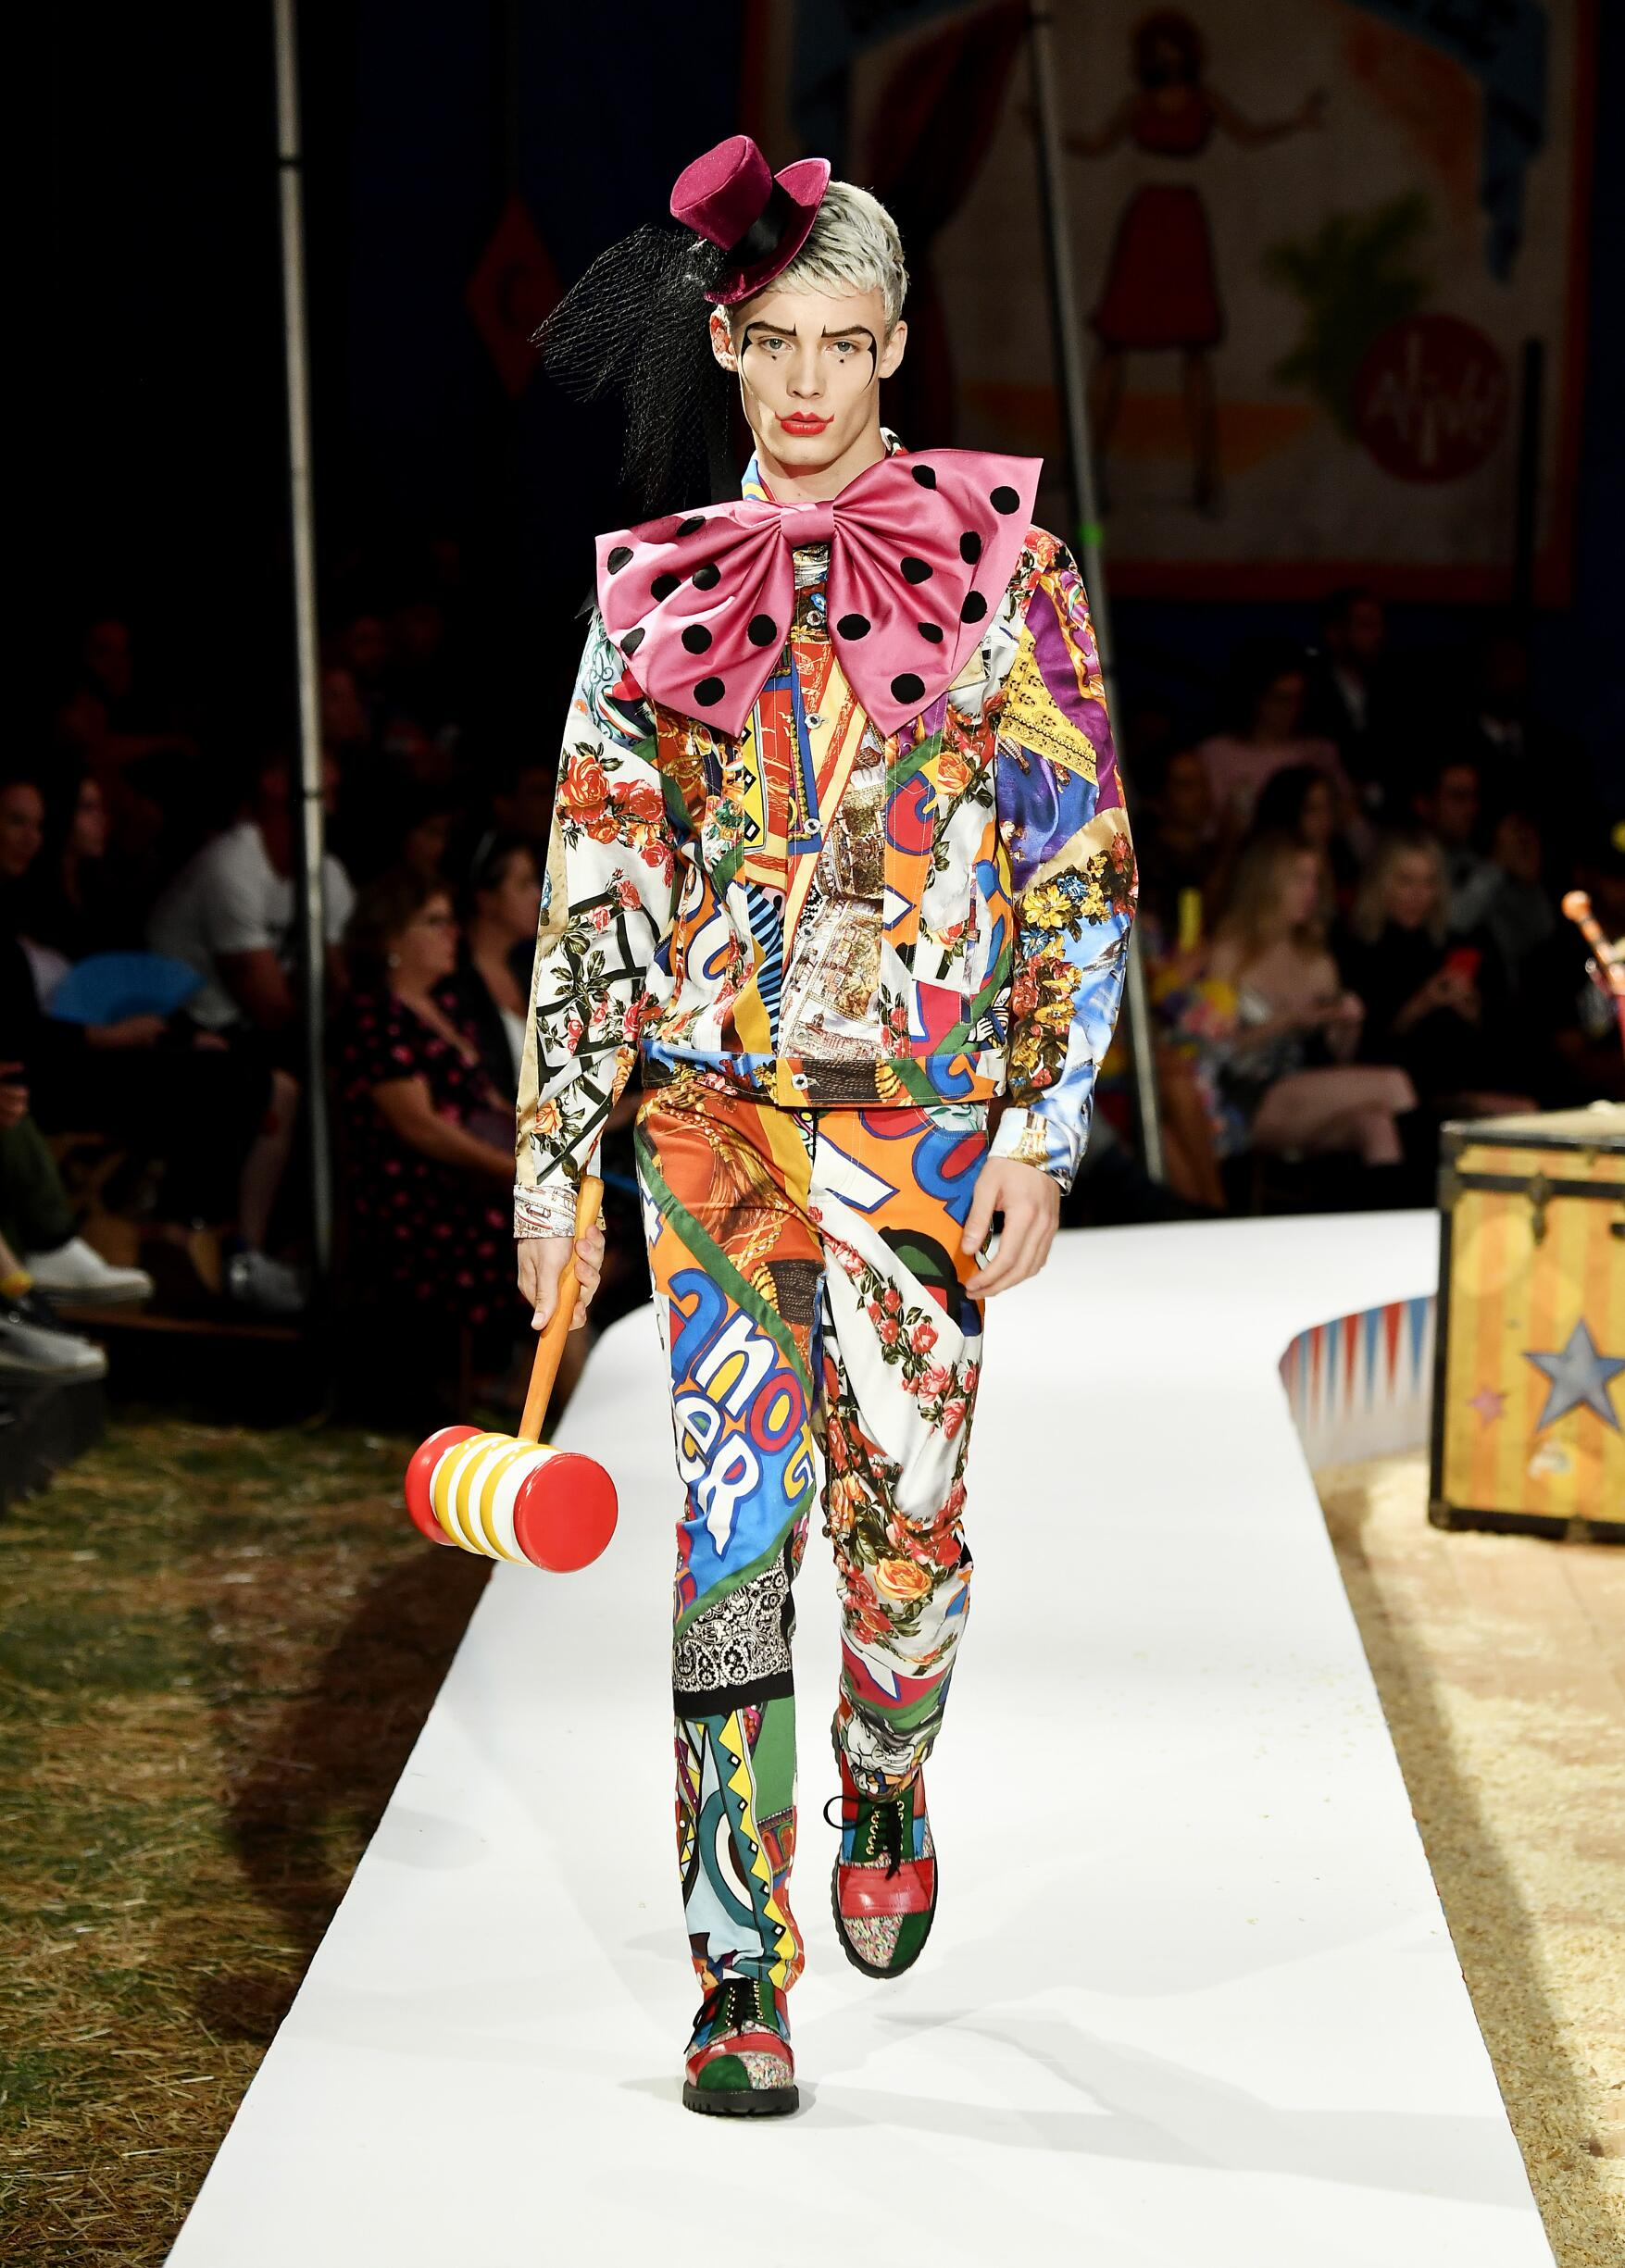 Moschino Spring Summer 2019 Menswear and Women's Resort Collection Look 61 Los Angeles